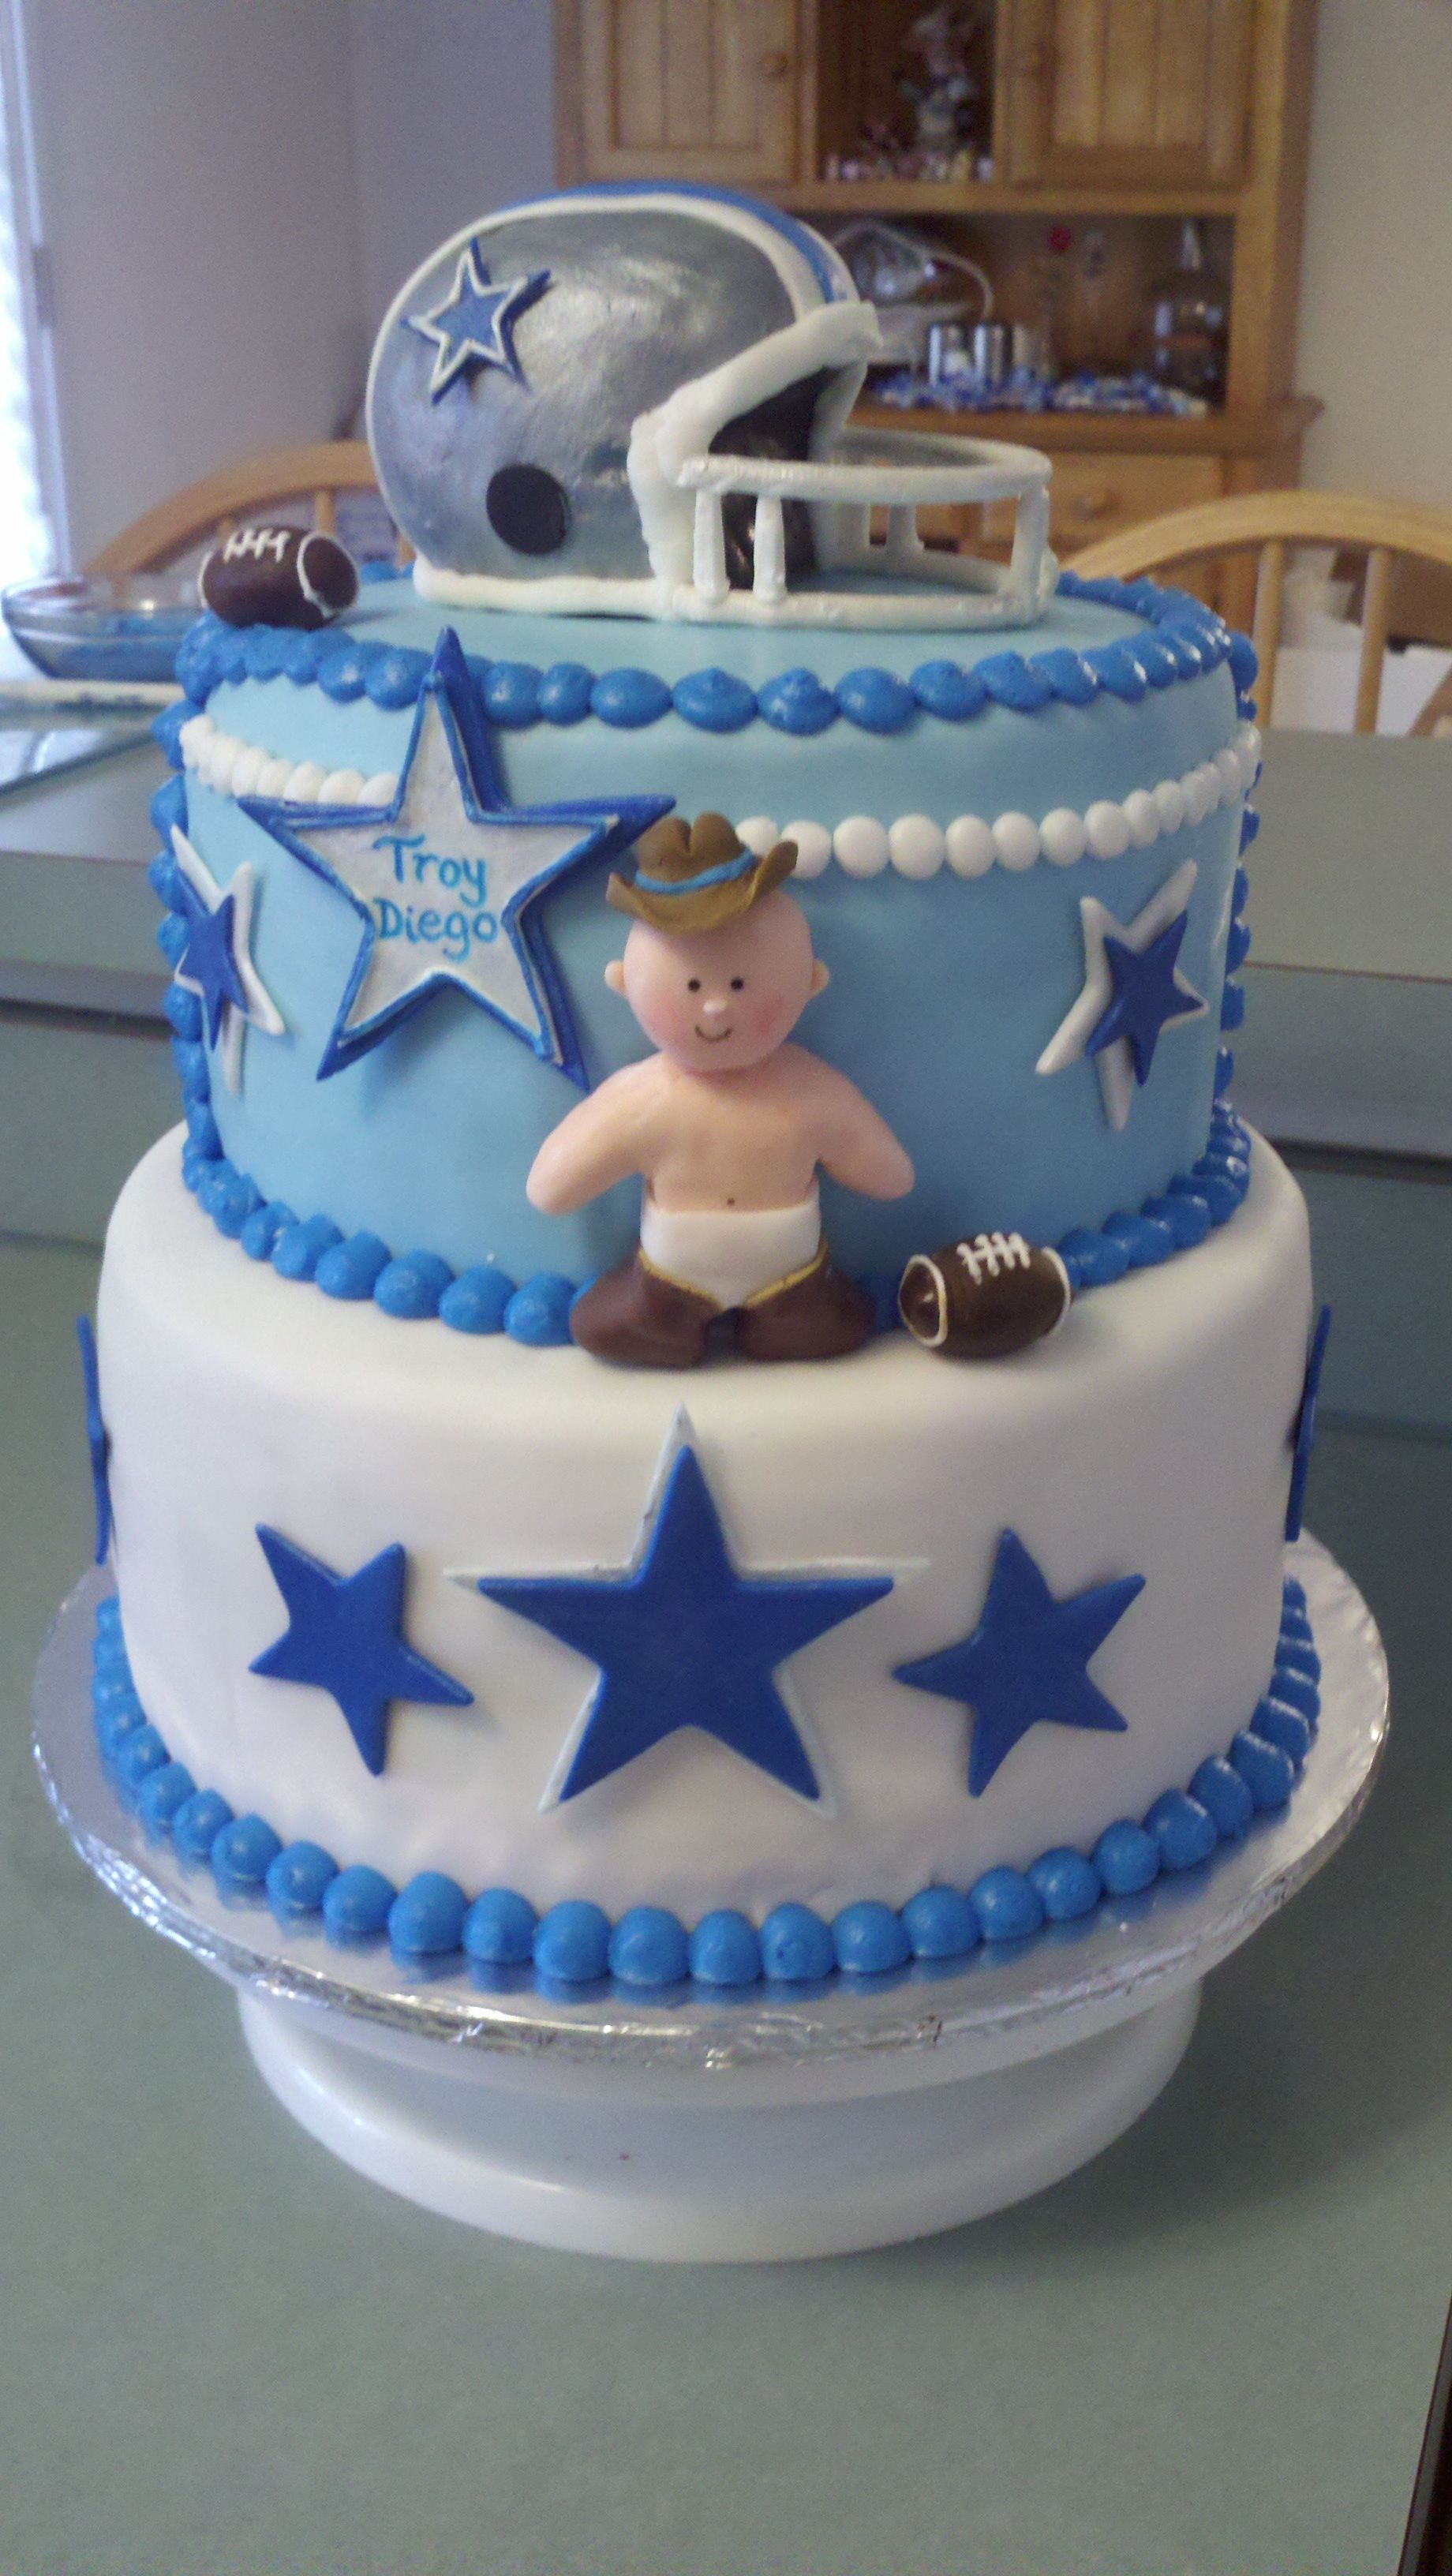 Dallas cowboys birthday cake ideas and designs - Dallas Cowboys Baby Shower Ideas